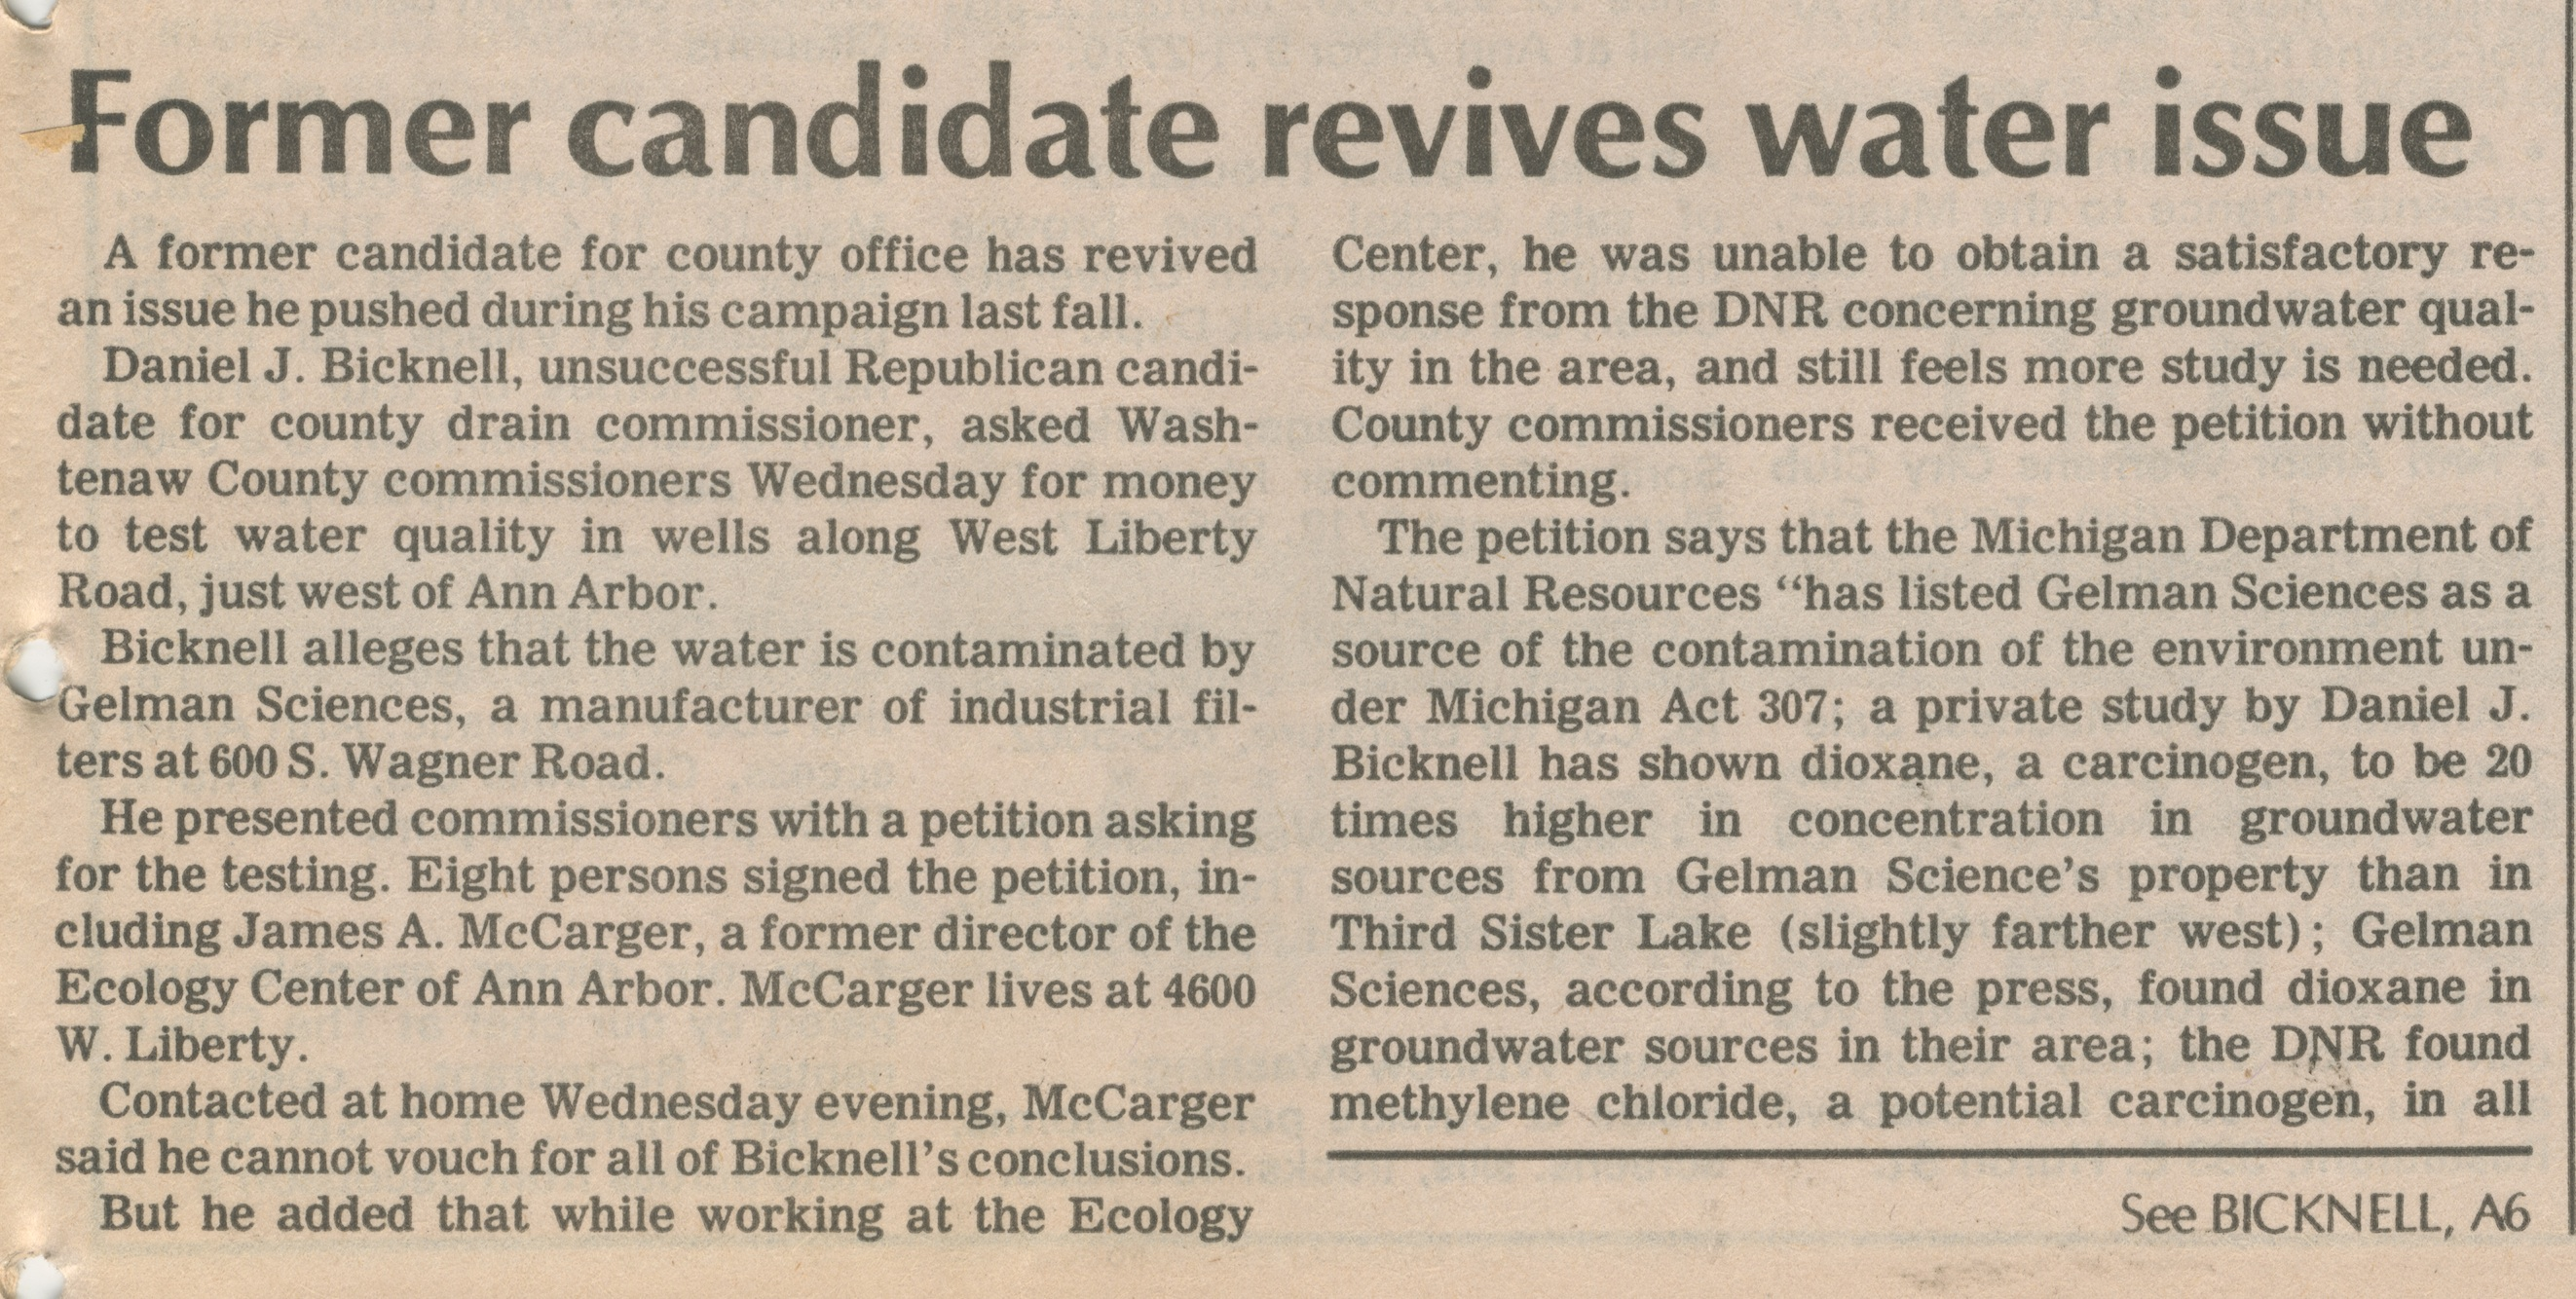 Former Candidate Revives Water Issue image